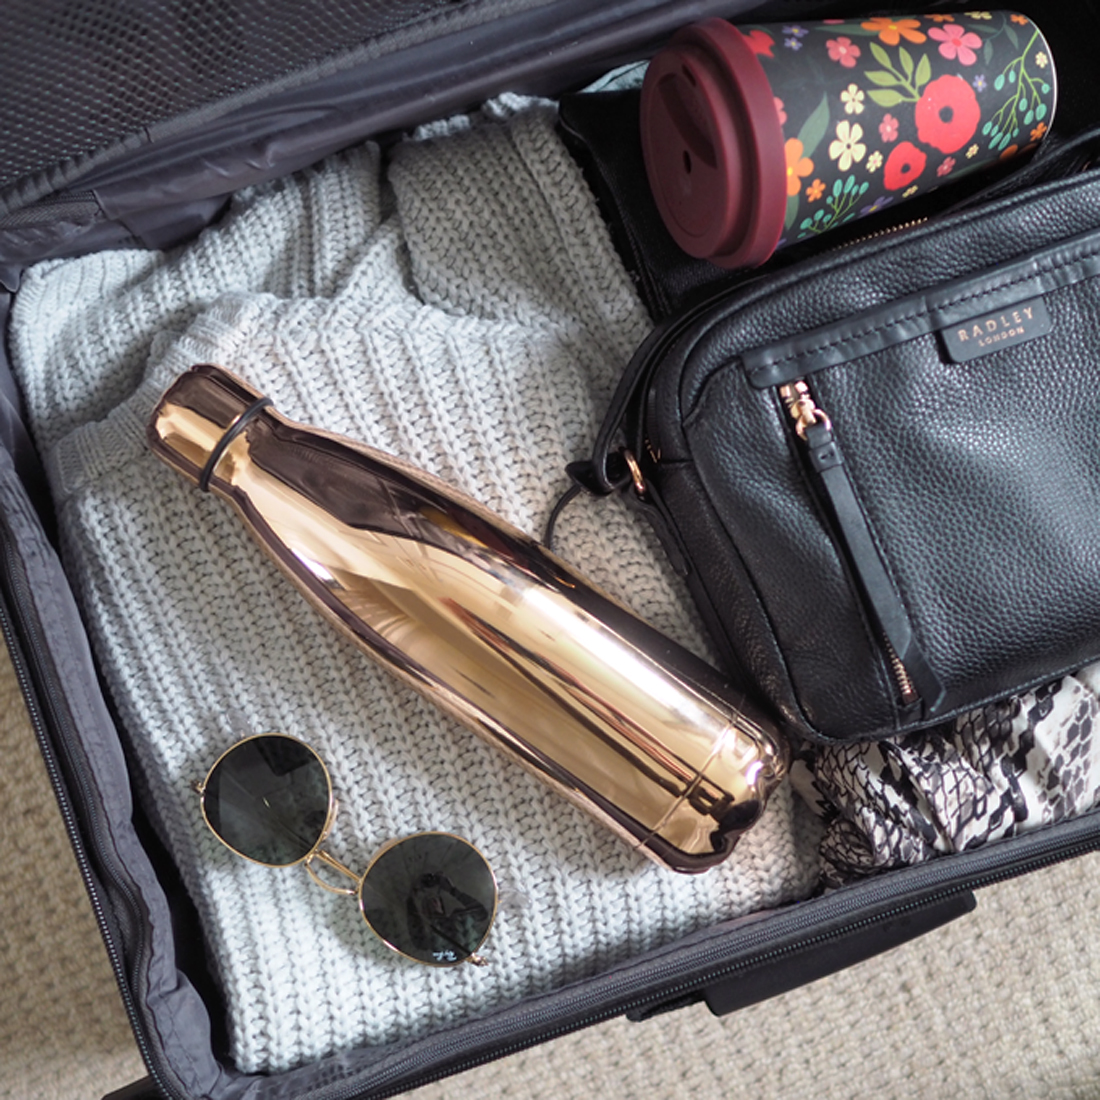 3 Eco-Friendly Travel Products For On The Go | MadeUpStyle.com